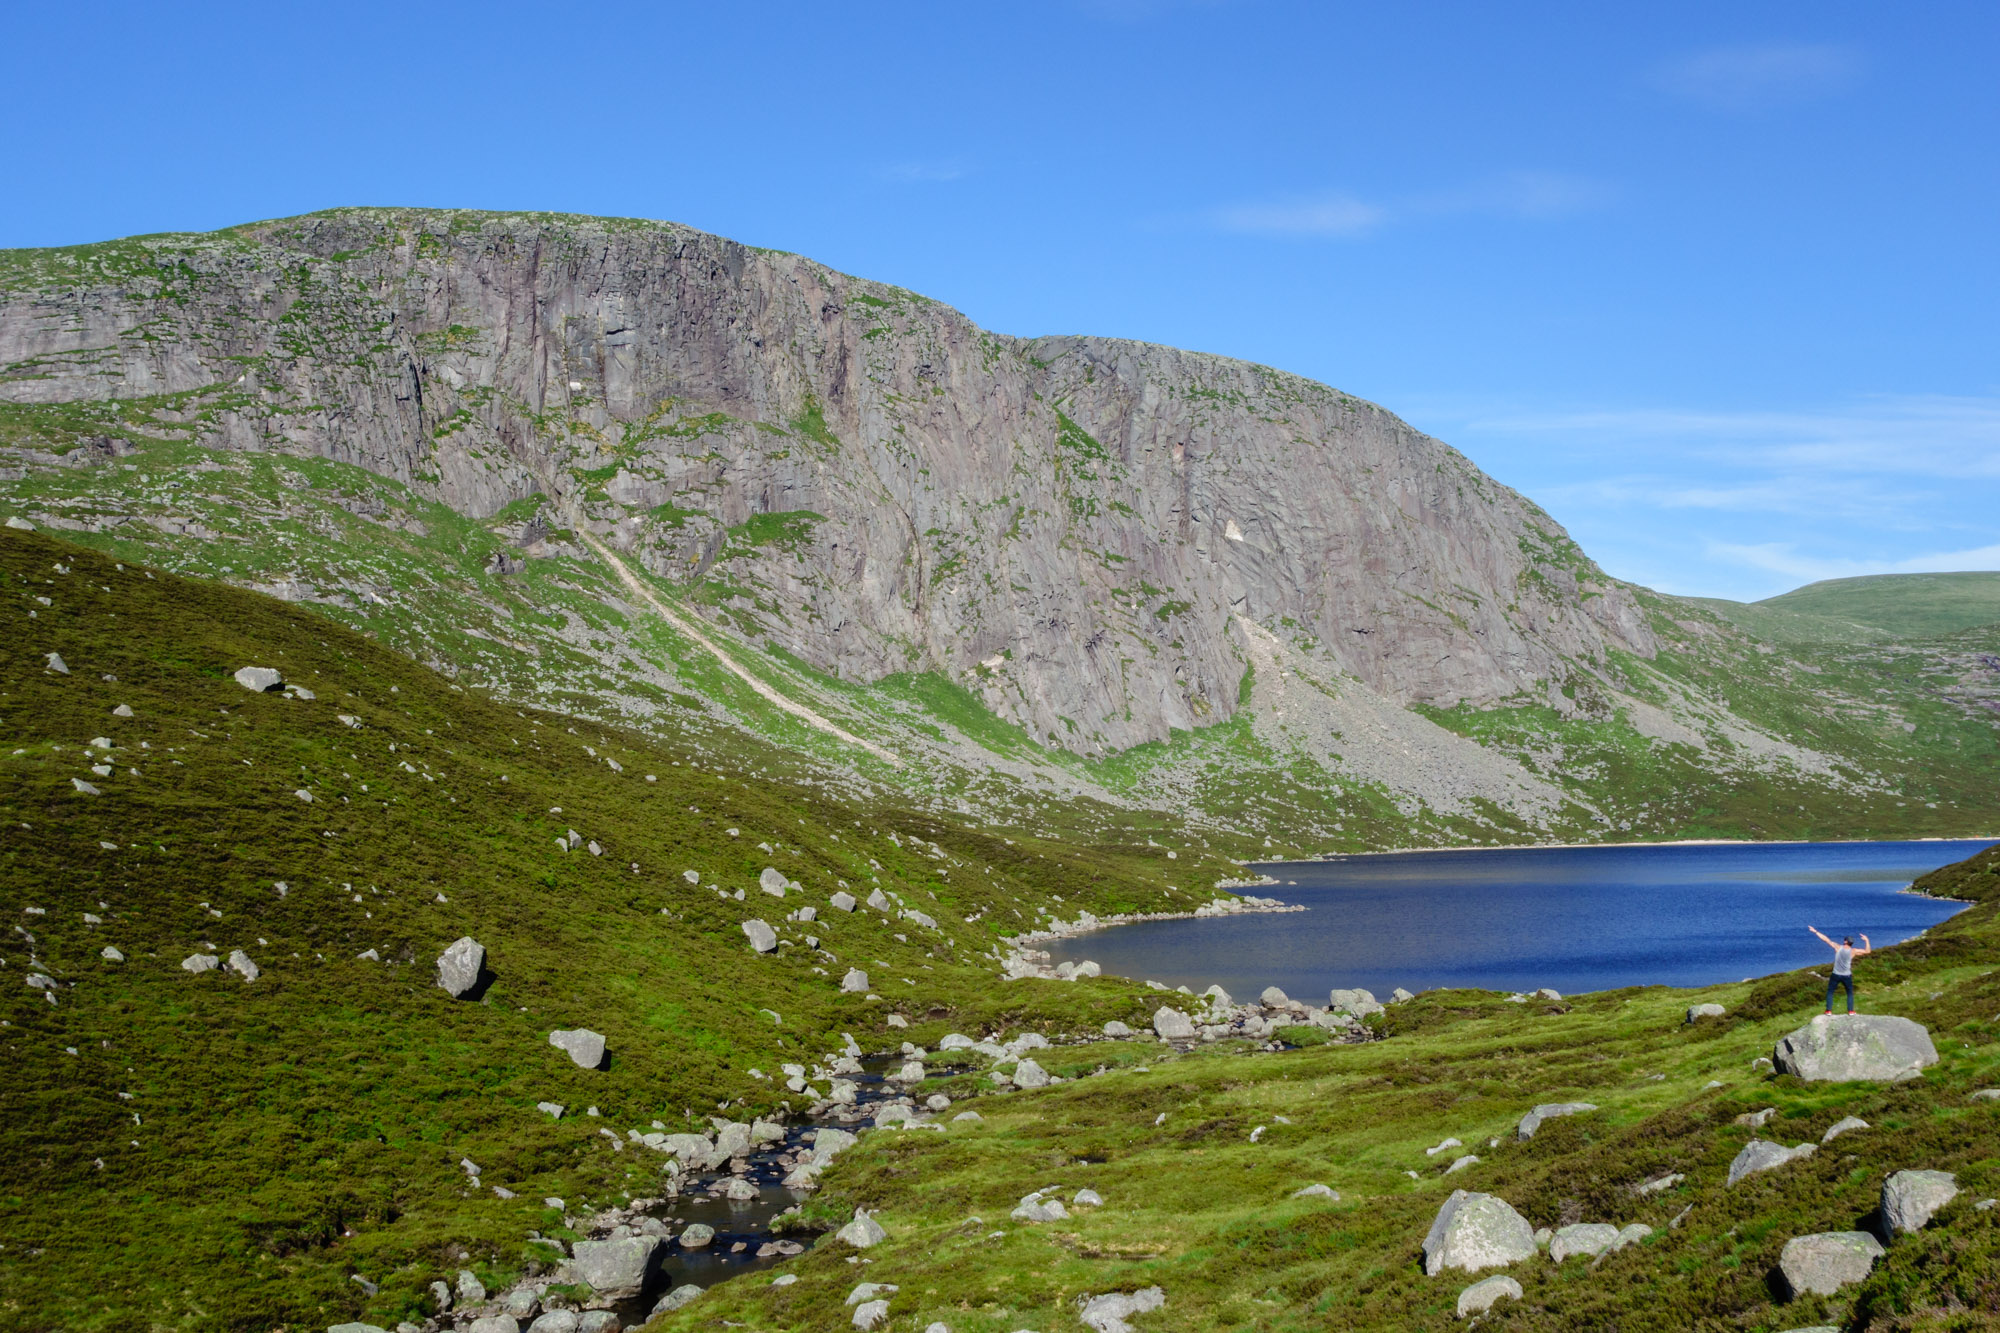 Joe dwarfed by the mighty Creag an Dubh Loch. A good place for a break on the sweat-fest of an approach